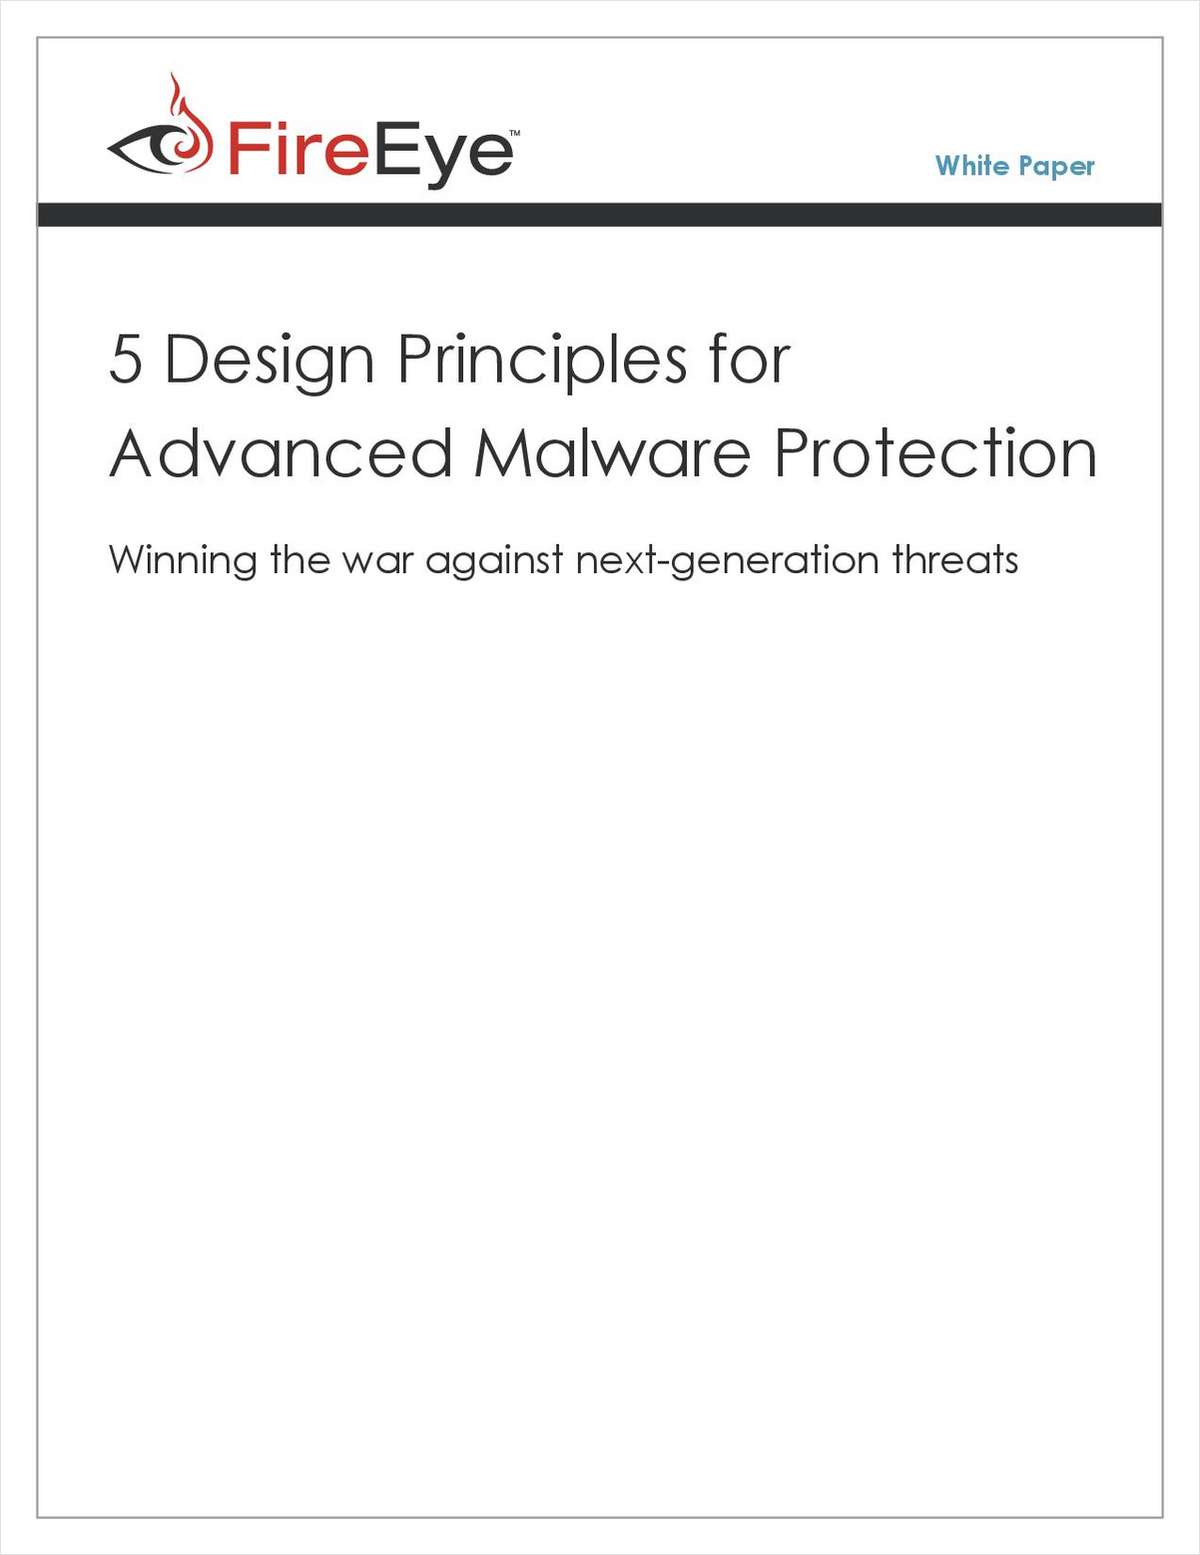 5 Design Principles for Advanced Malware Protection